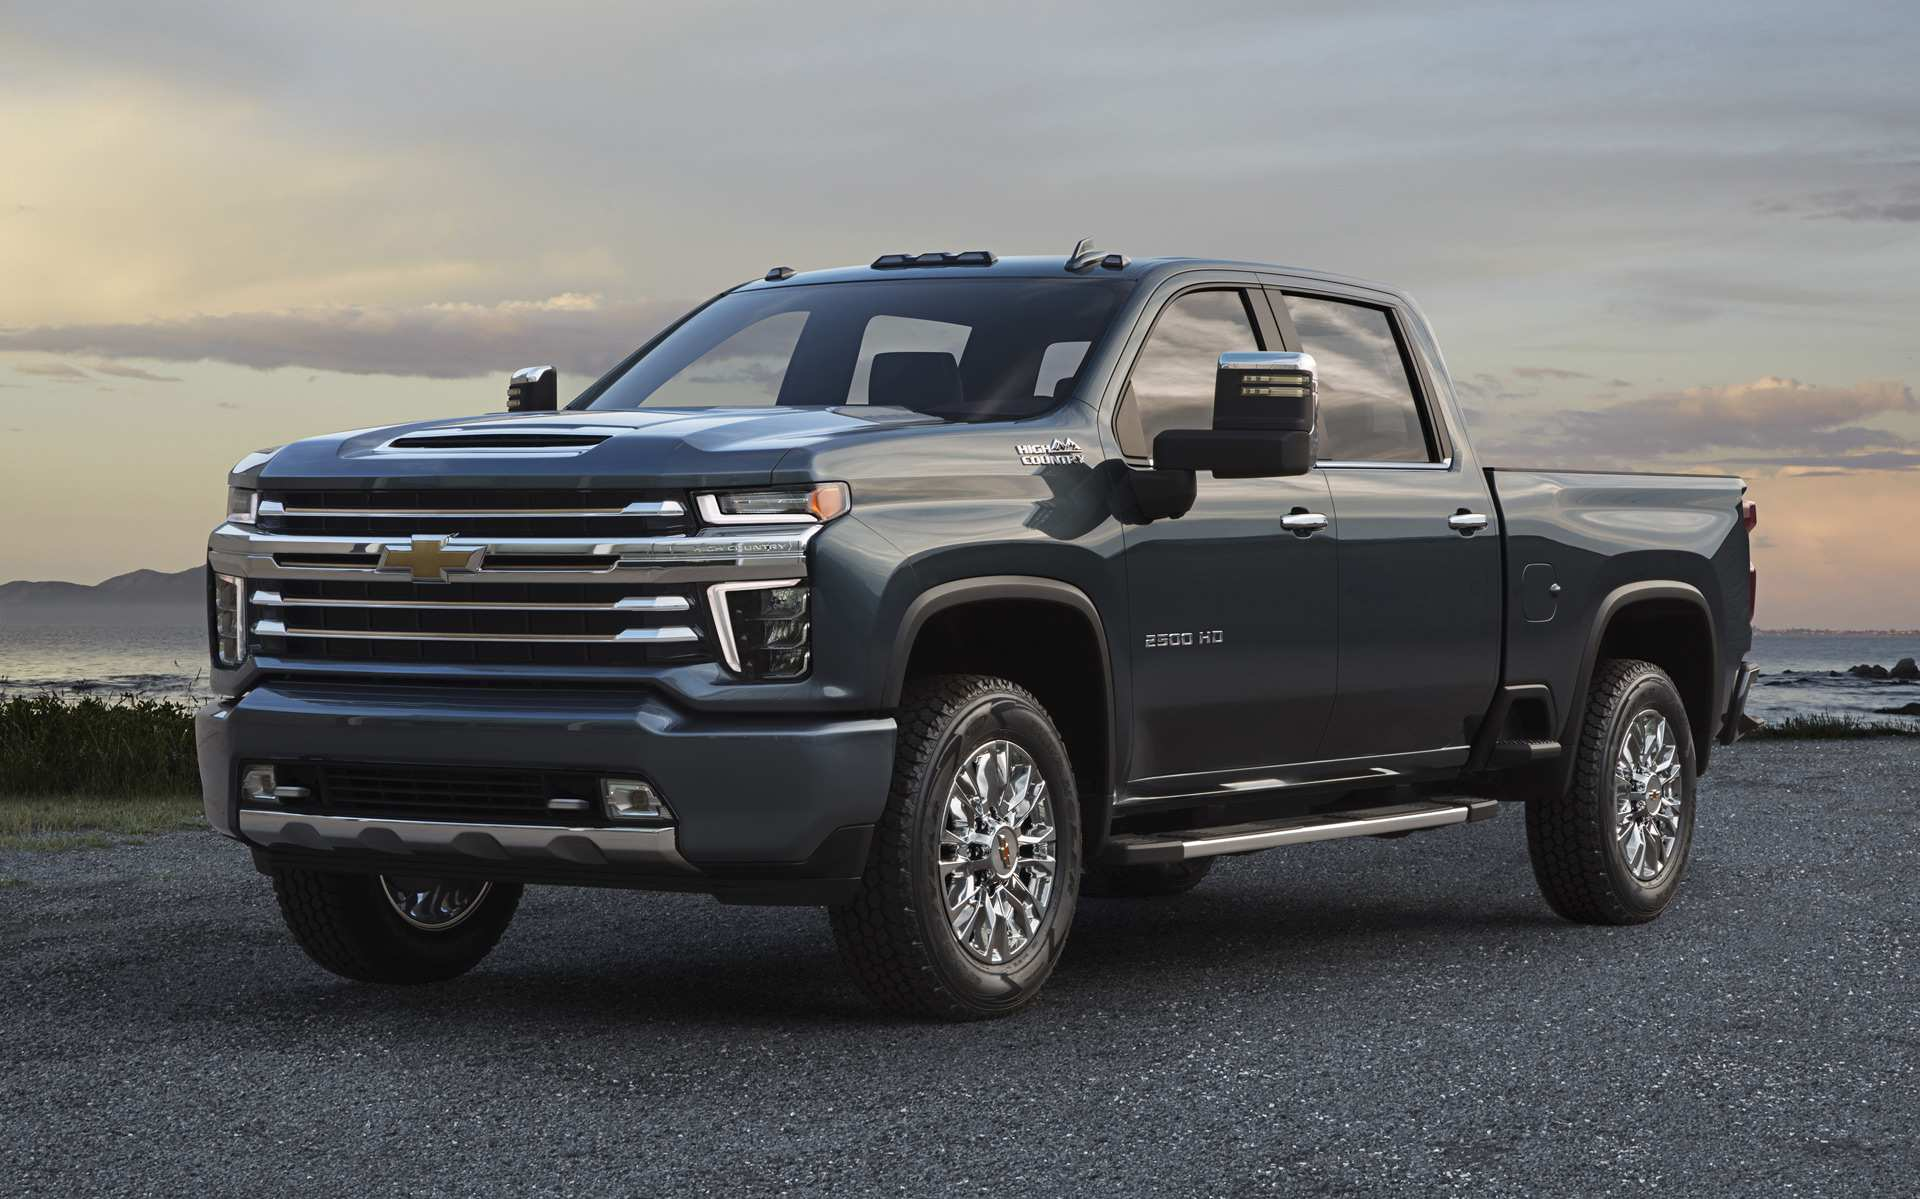 55 A 2020 Gmc Sierra 2500 Gas Engine Redesign And Review